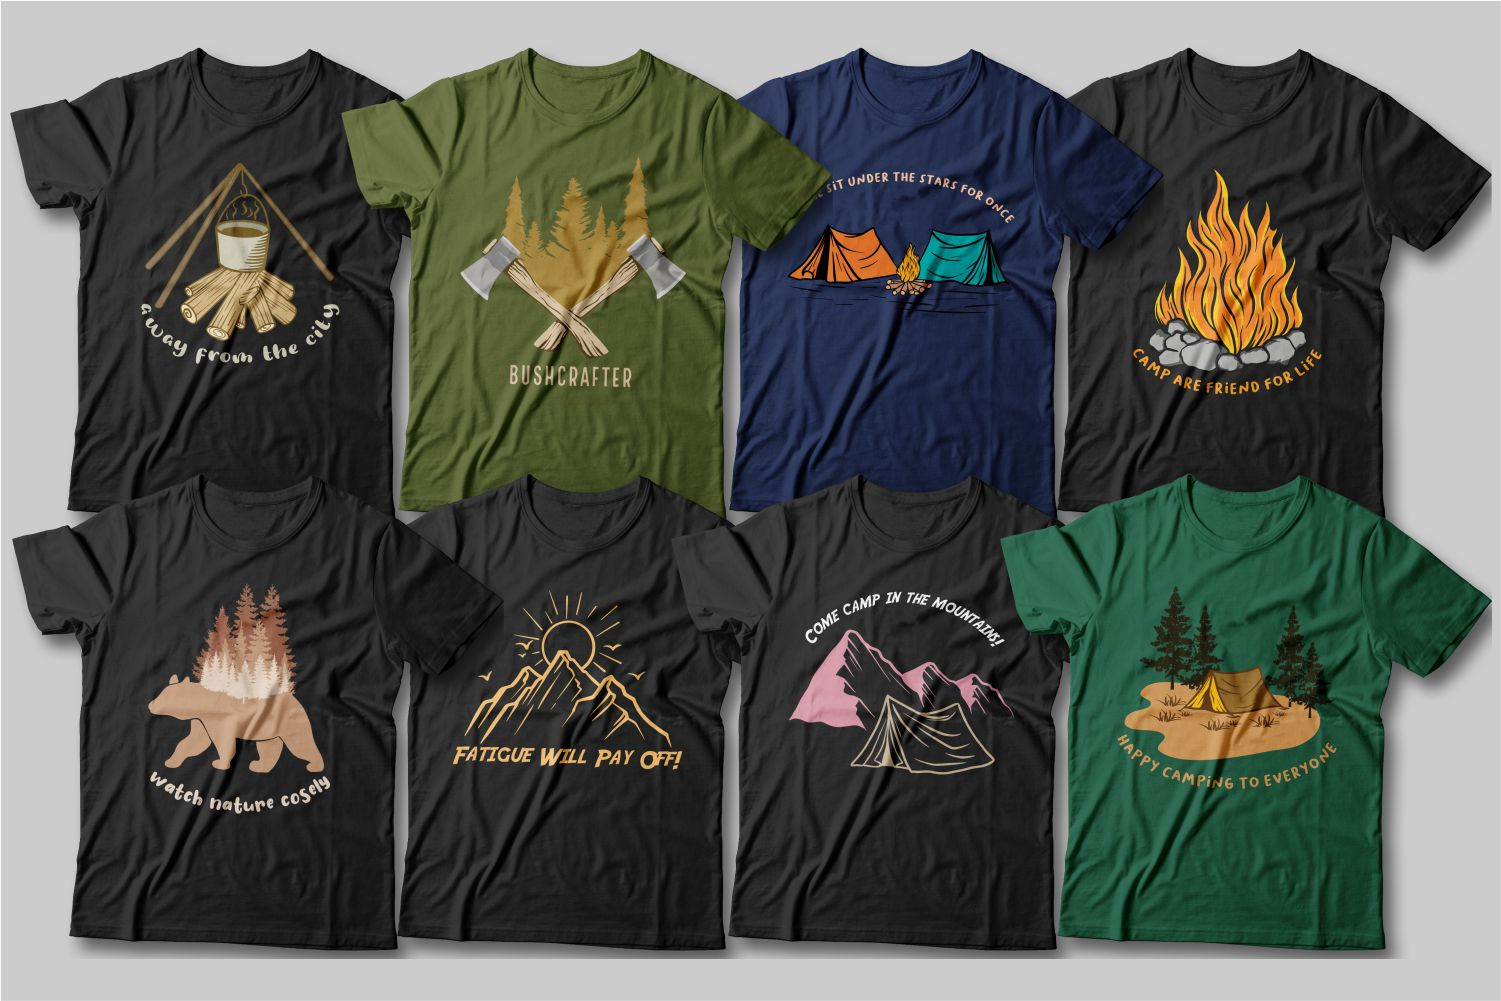 These T-shirts will become your favorites as they speak of mountains and nature.